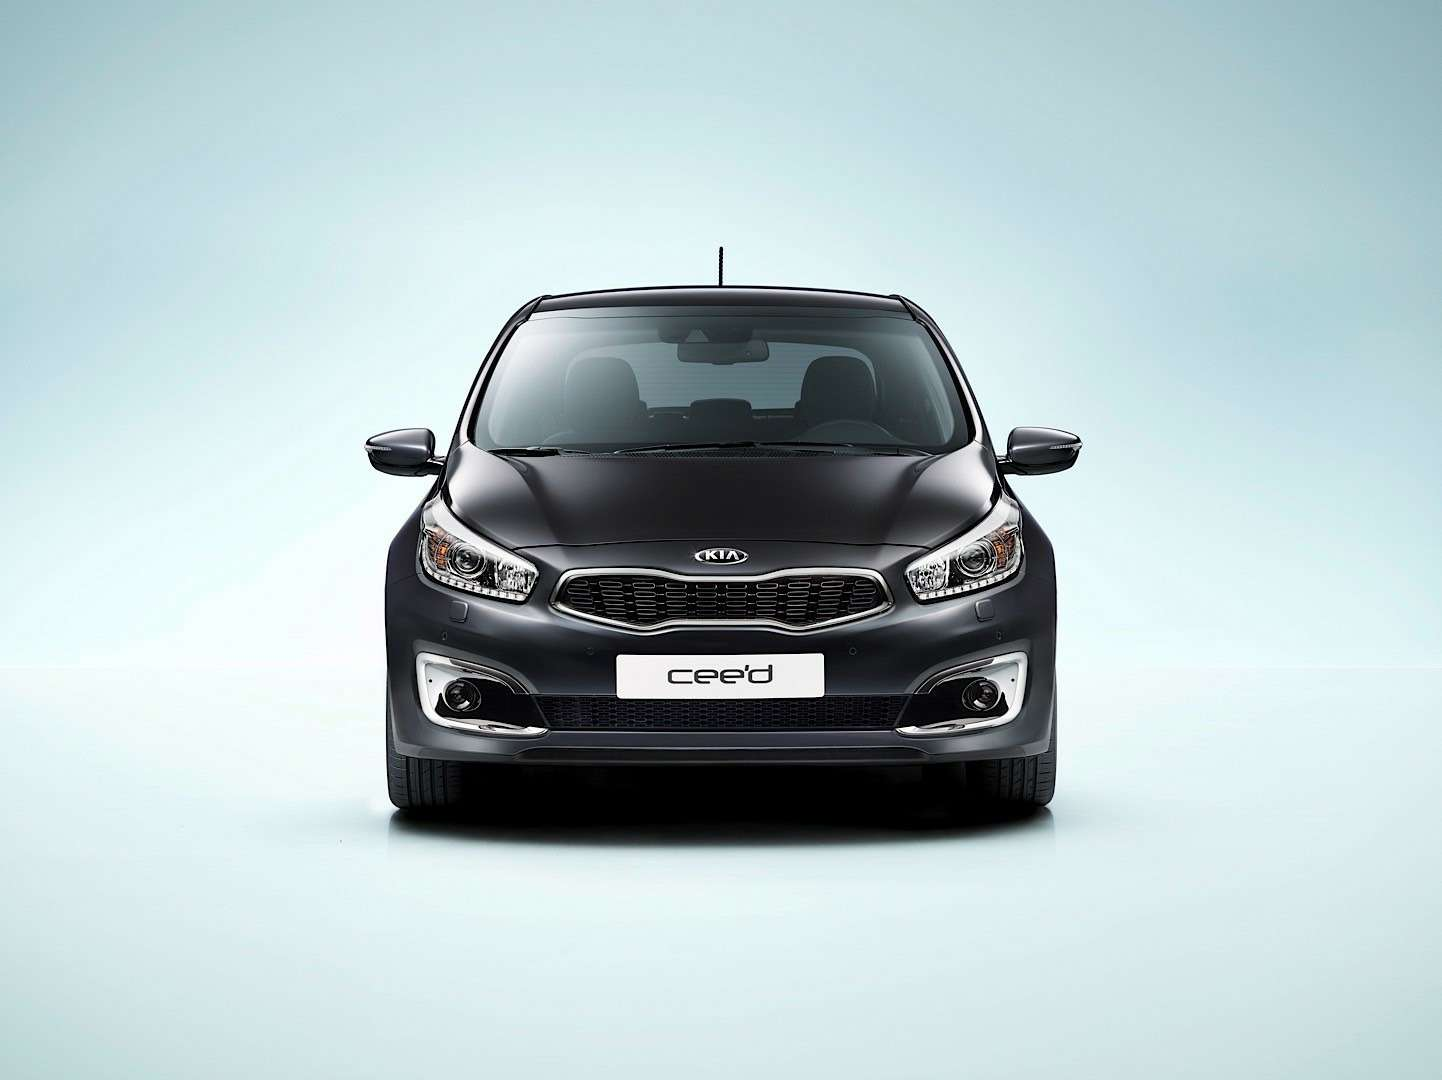 2016-kia-cee-d-brings-subtle-visual-upgrades-new-engines-and-sporty-gt-line-photo-gallery_7